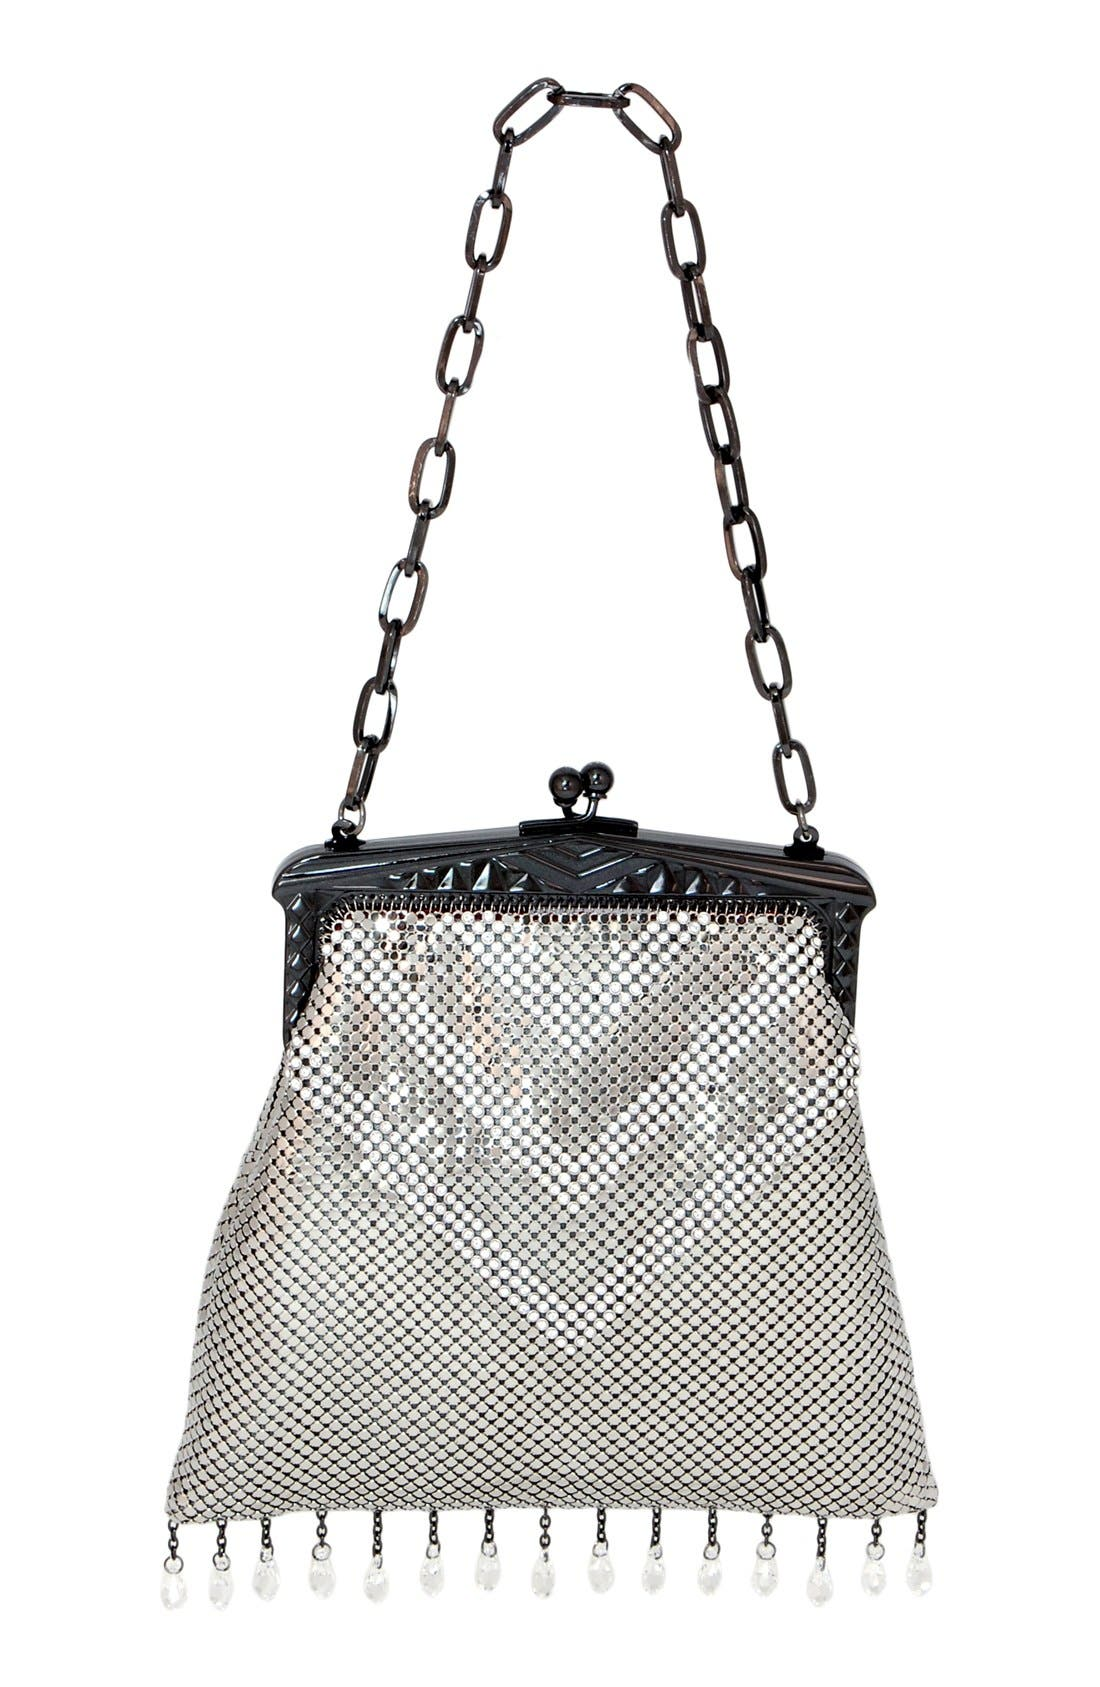 WHITING & DAVIS, 'Heritage - Deco' Mesh Clutch, Main thumbnail 1, color, PEWTER